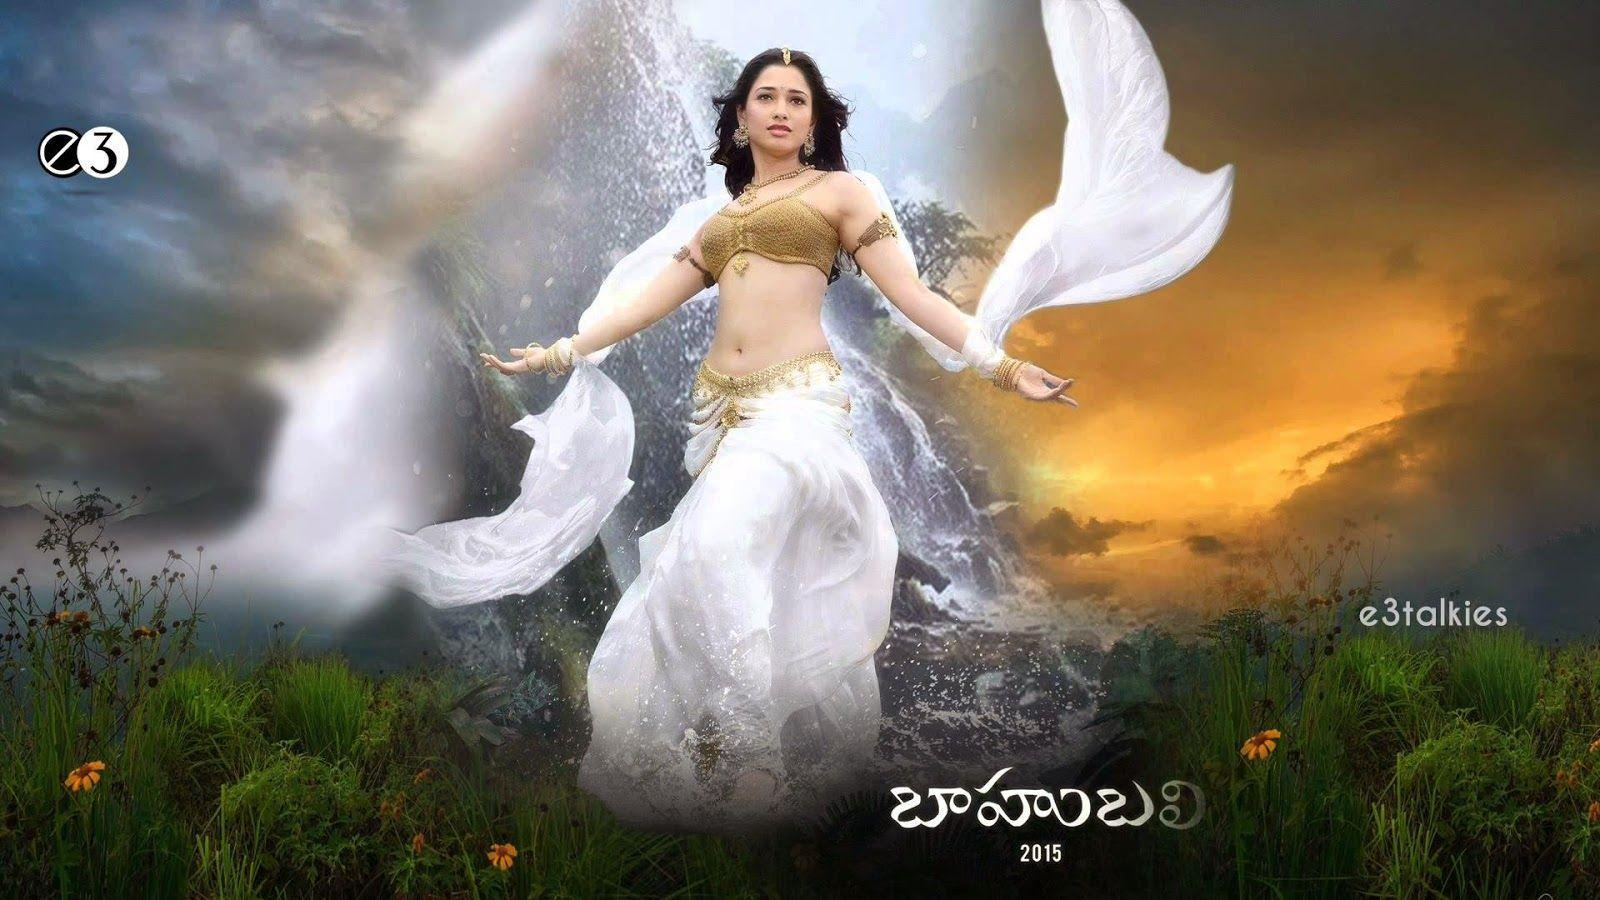 Wallpaper download bahubali 2 - Bahubali 2 Wallpapers Tamanna Anushka Hd Images Photos